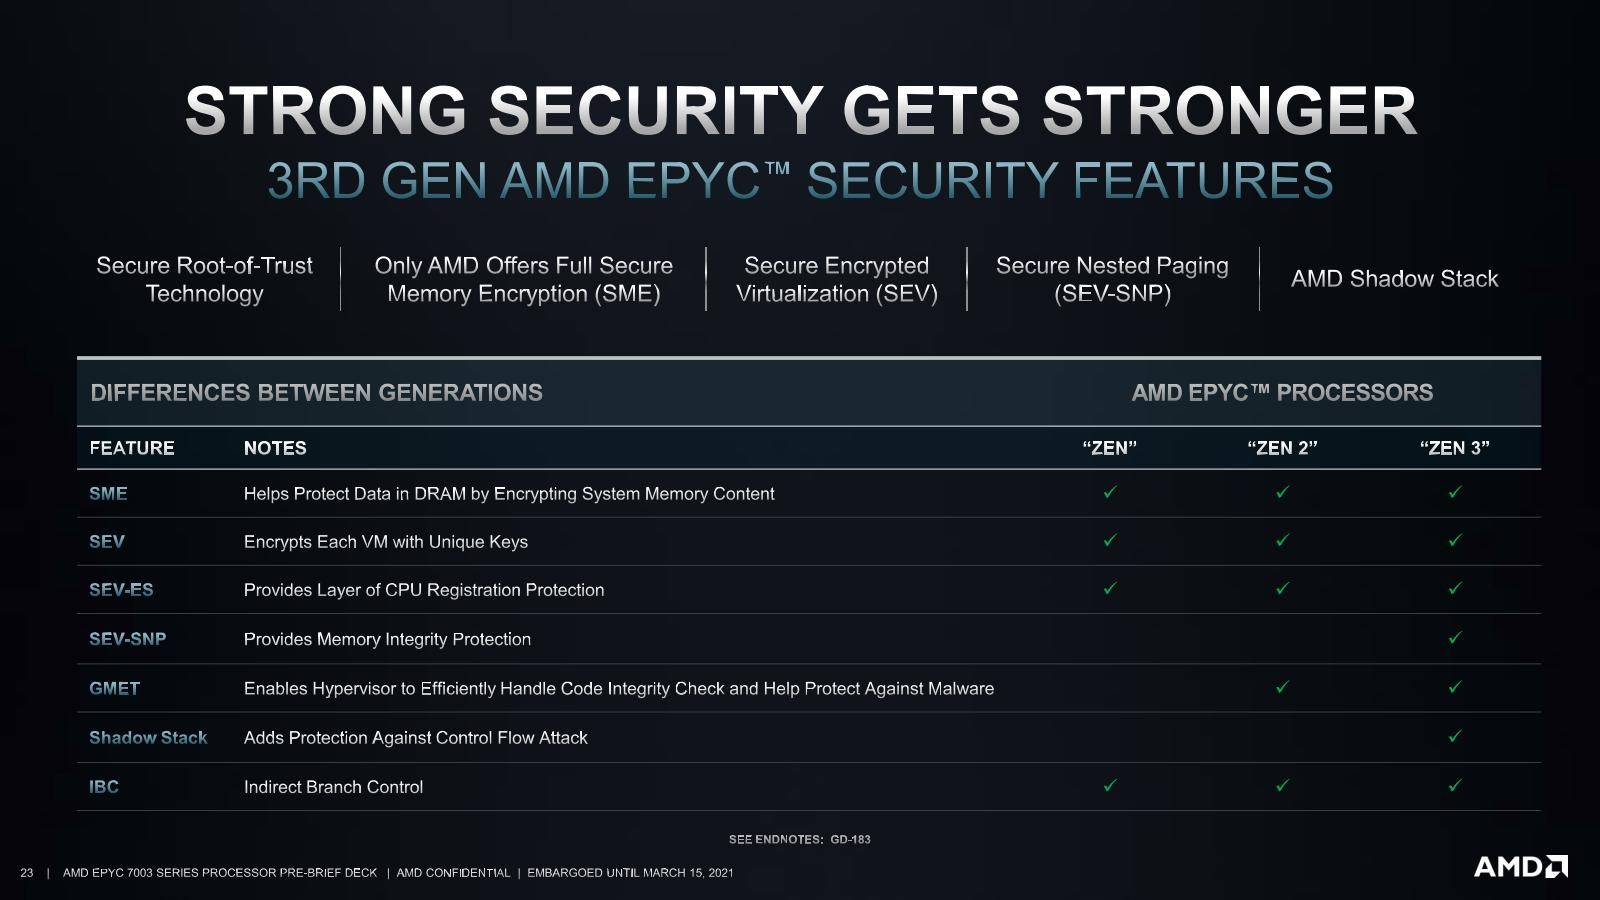 STRONG SECURITY GETS STRONGER